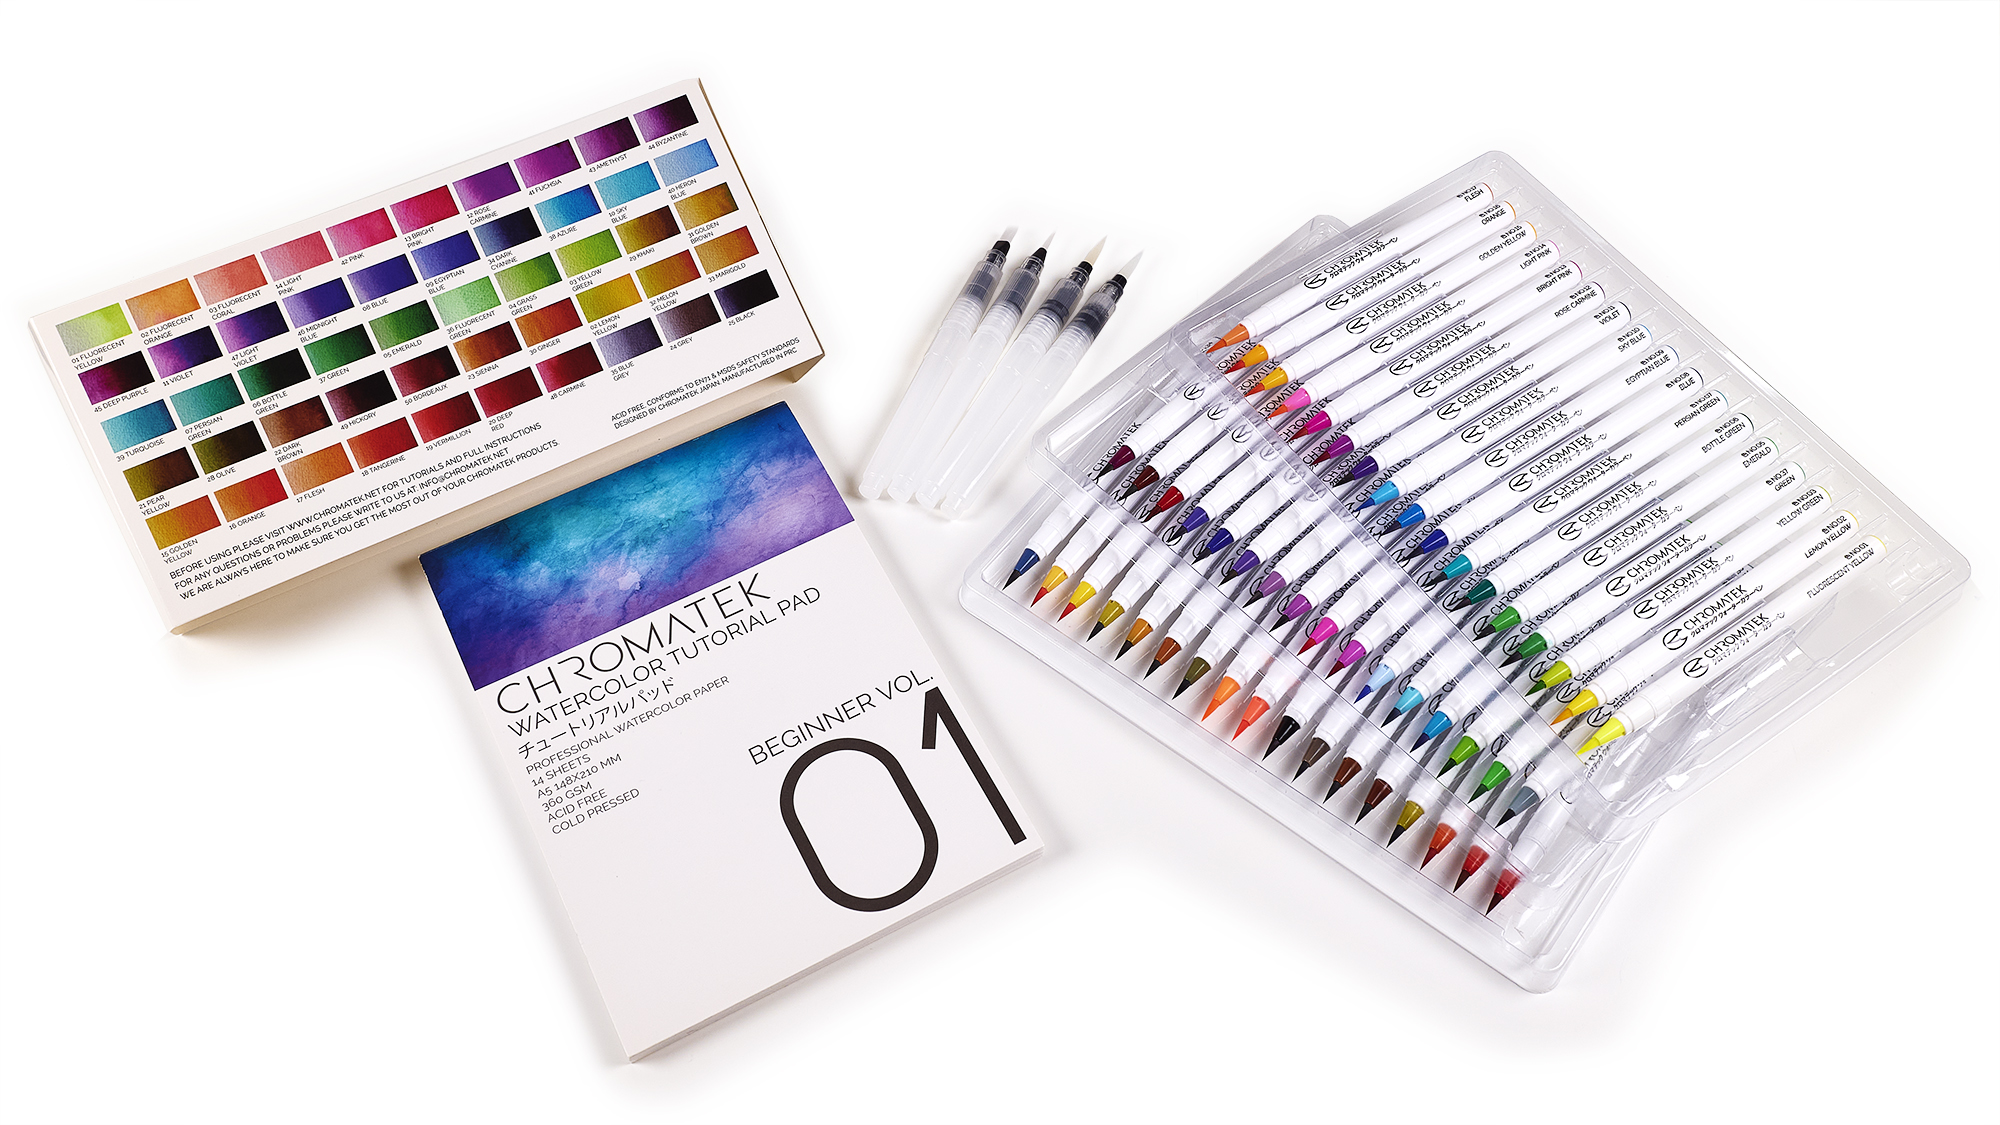 54 Watercolor Brush Pens, 15 Page Pad & Online Video Tutorial Series by Chromatek. Real Brush Tip. 4 Blending Brushes. Easily Blendable. Vivid. Smooth. 50 Unique Colors. Professional Art Supplies.